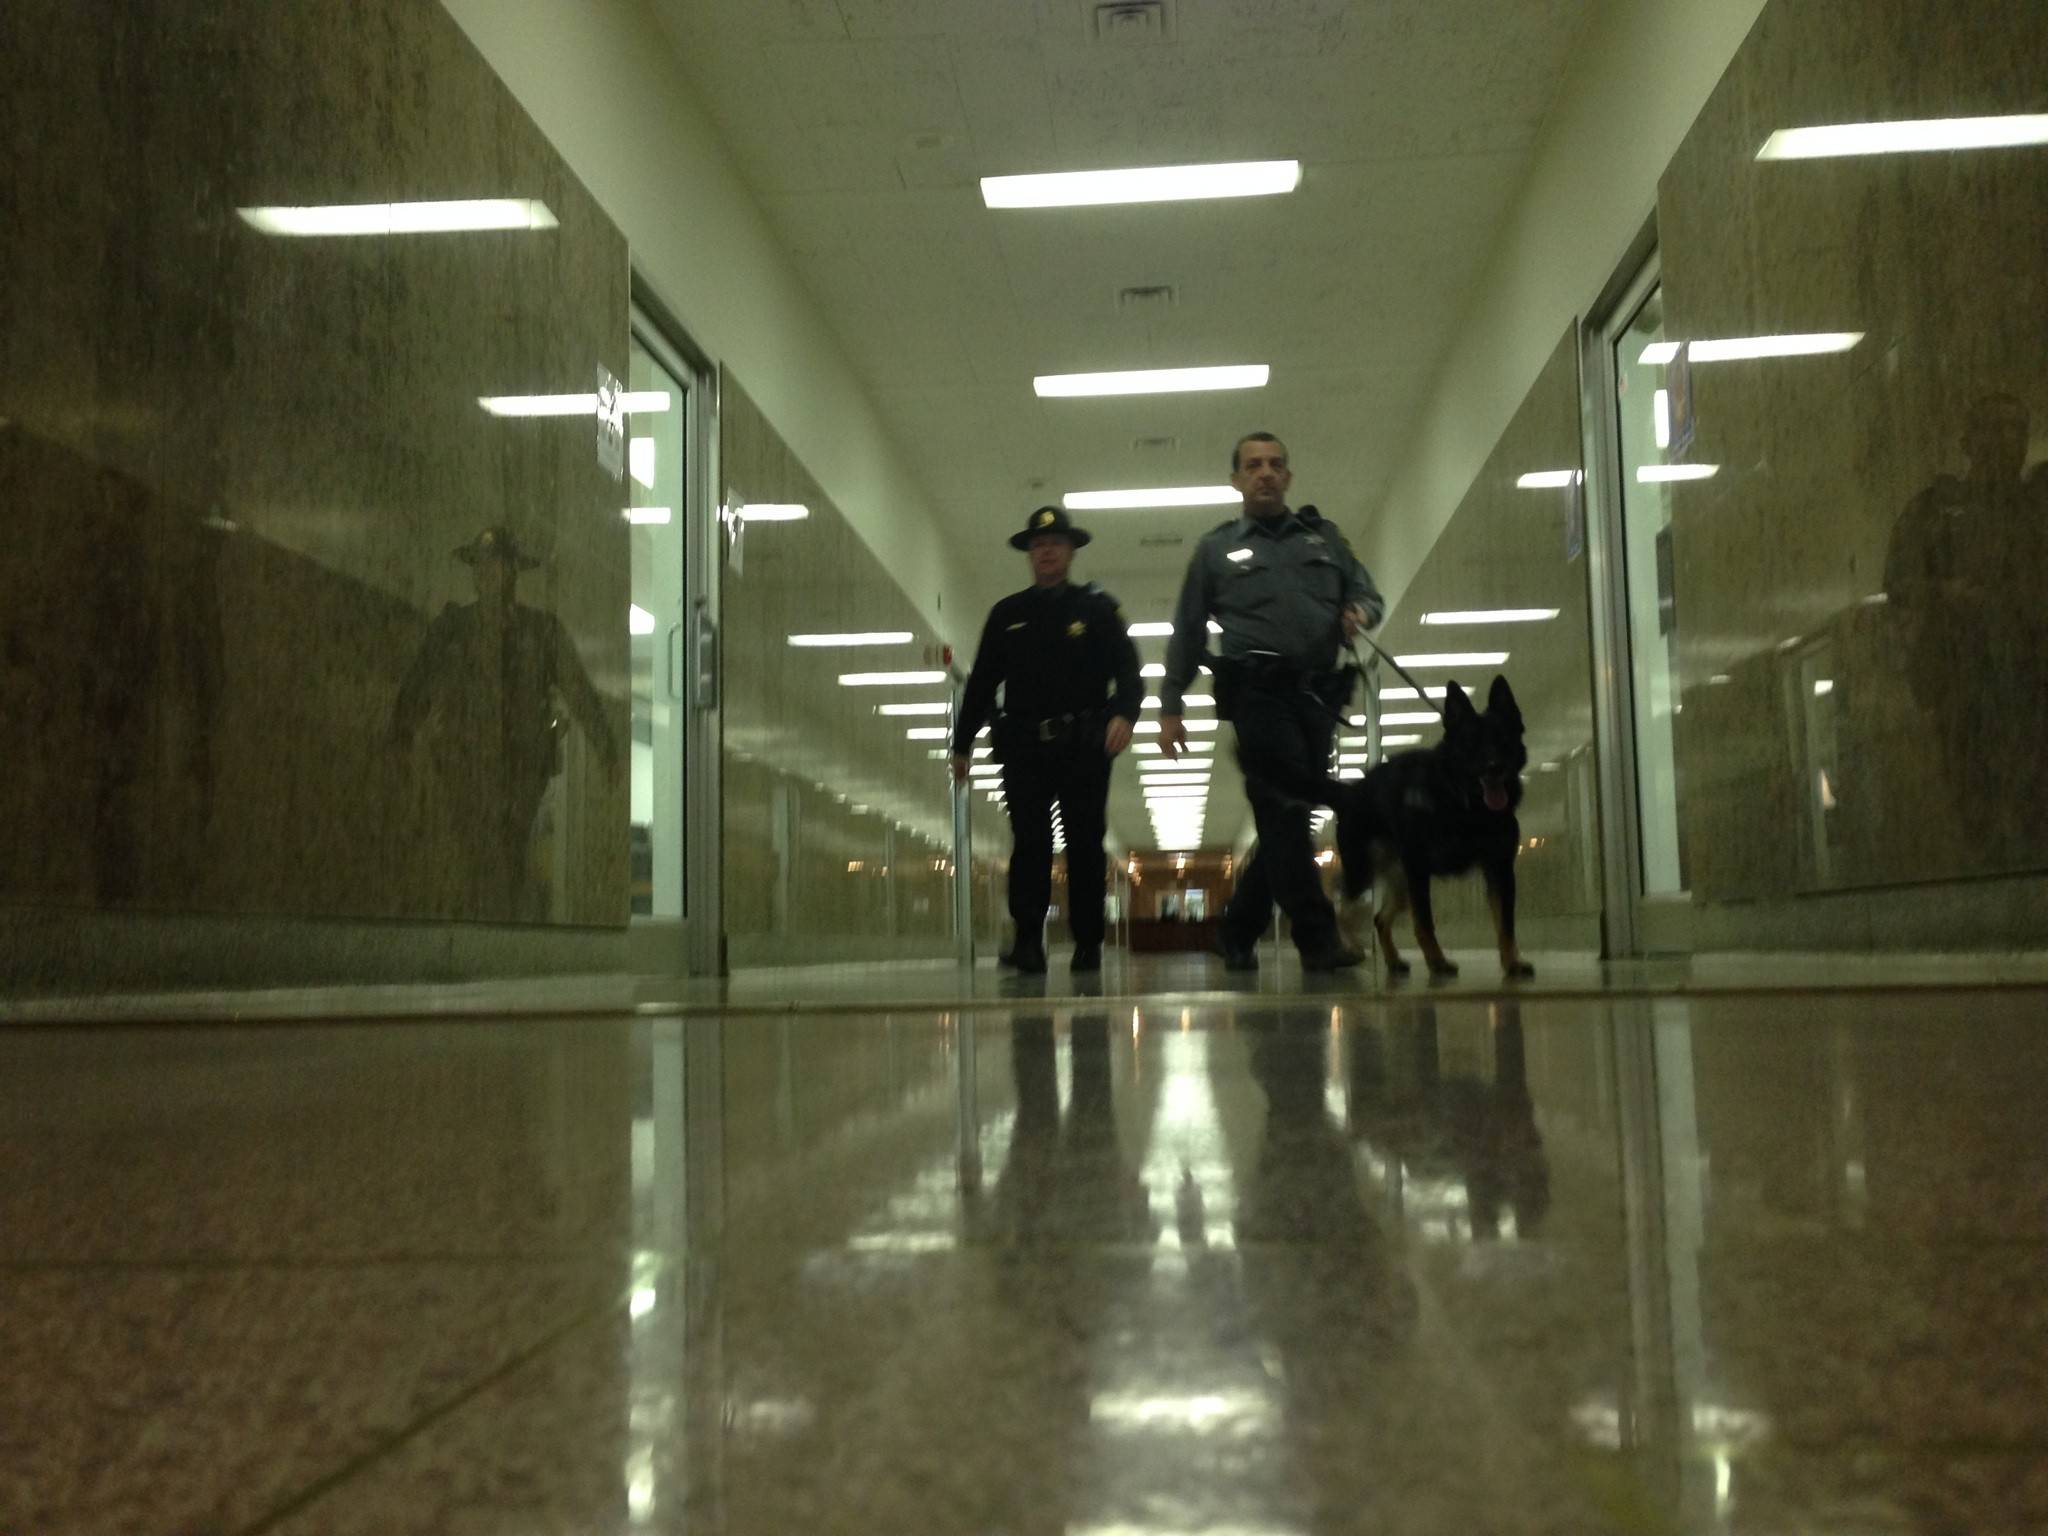 Two Secretary of State police officers walk in the hallway by state Rep. Keith Farnham's Springfield office last Friday.